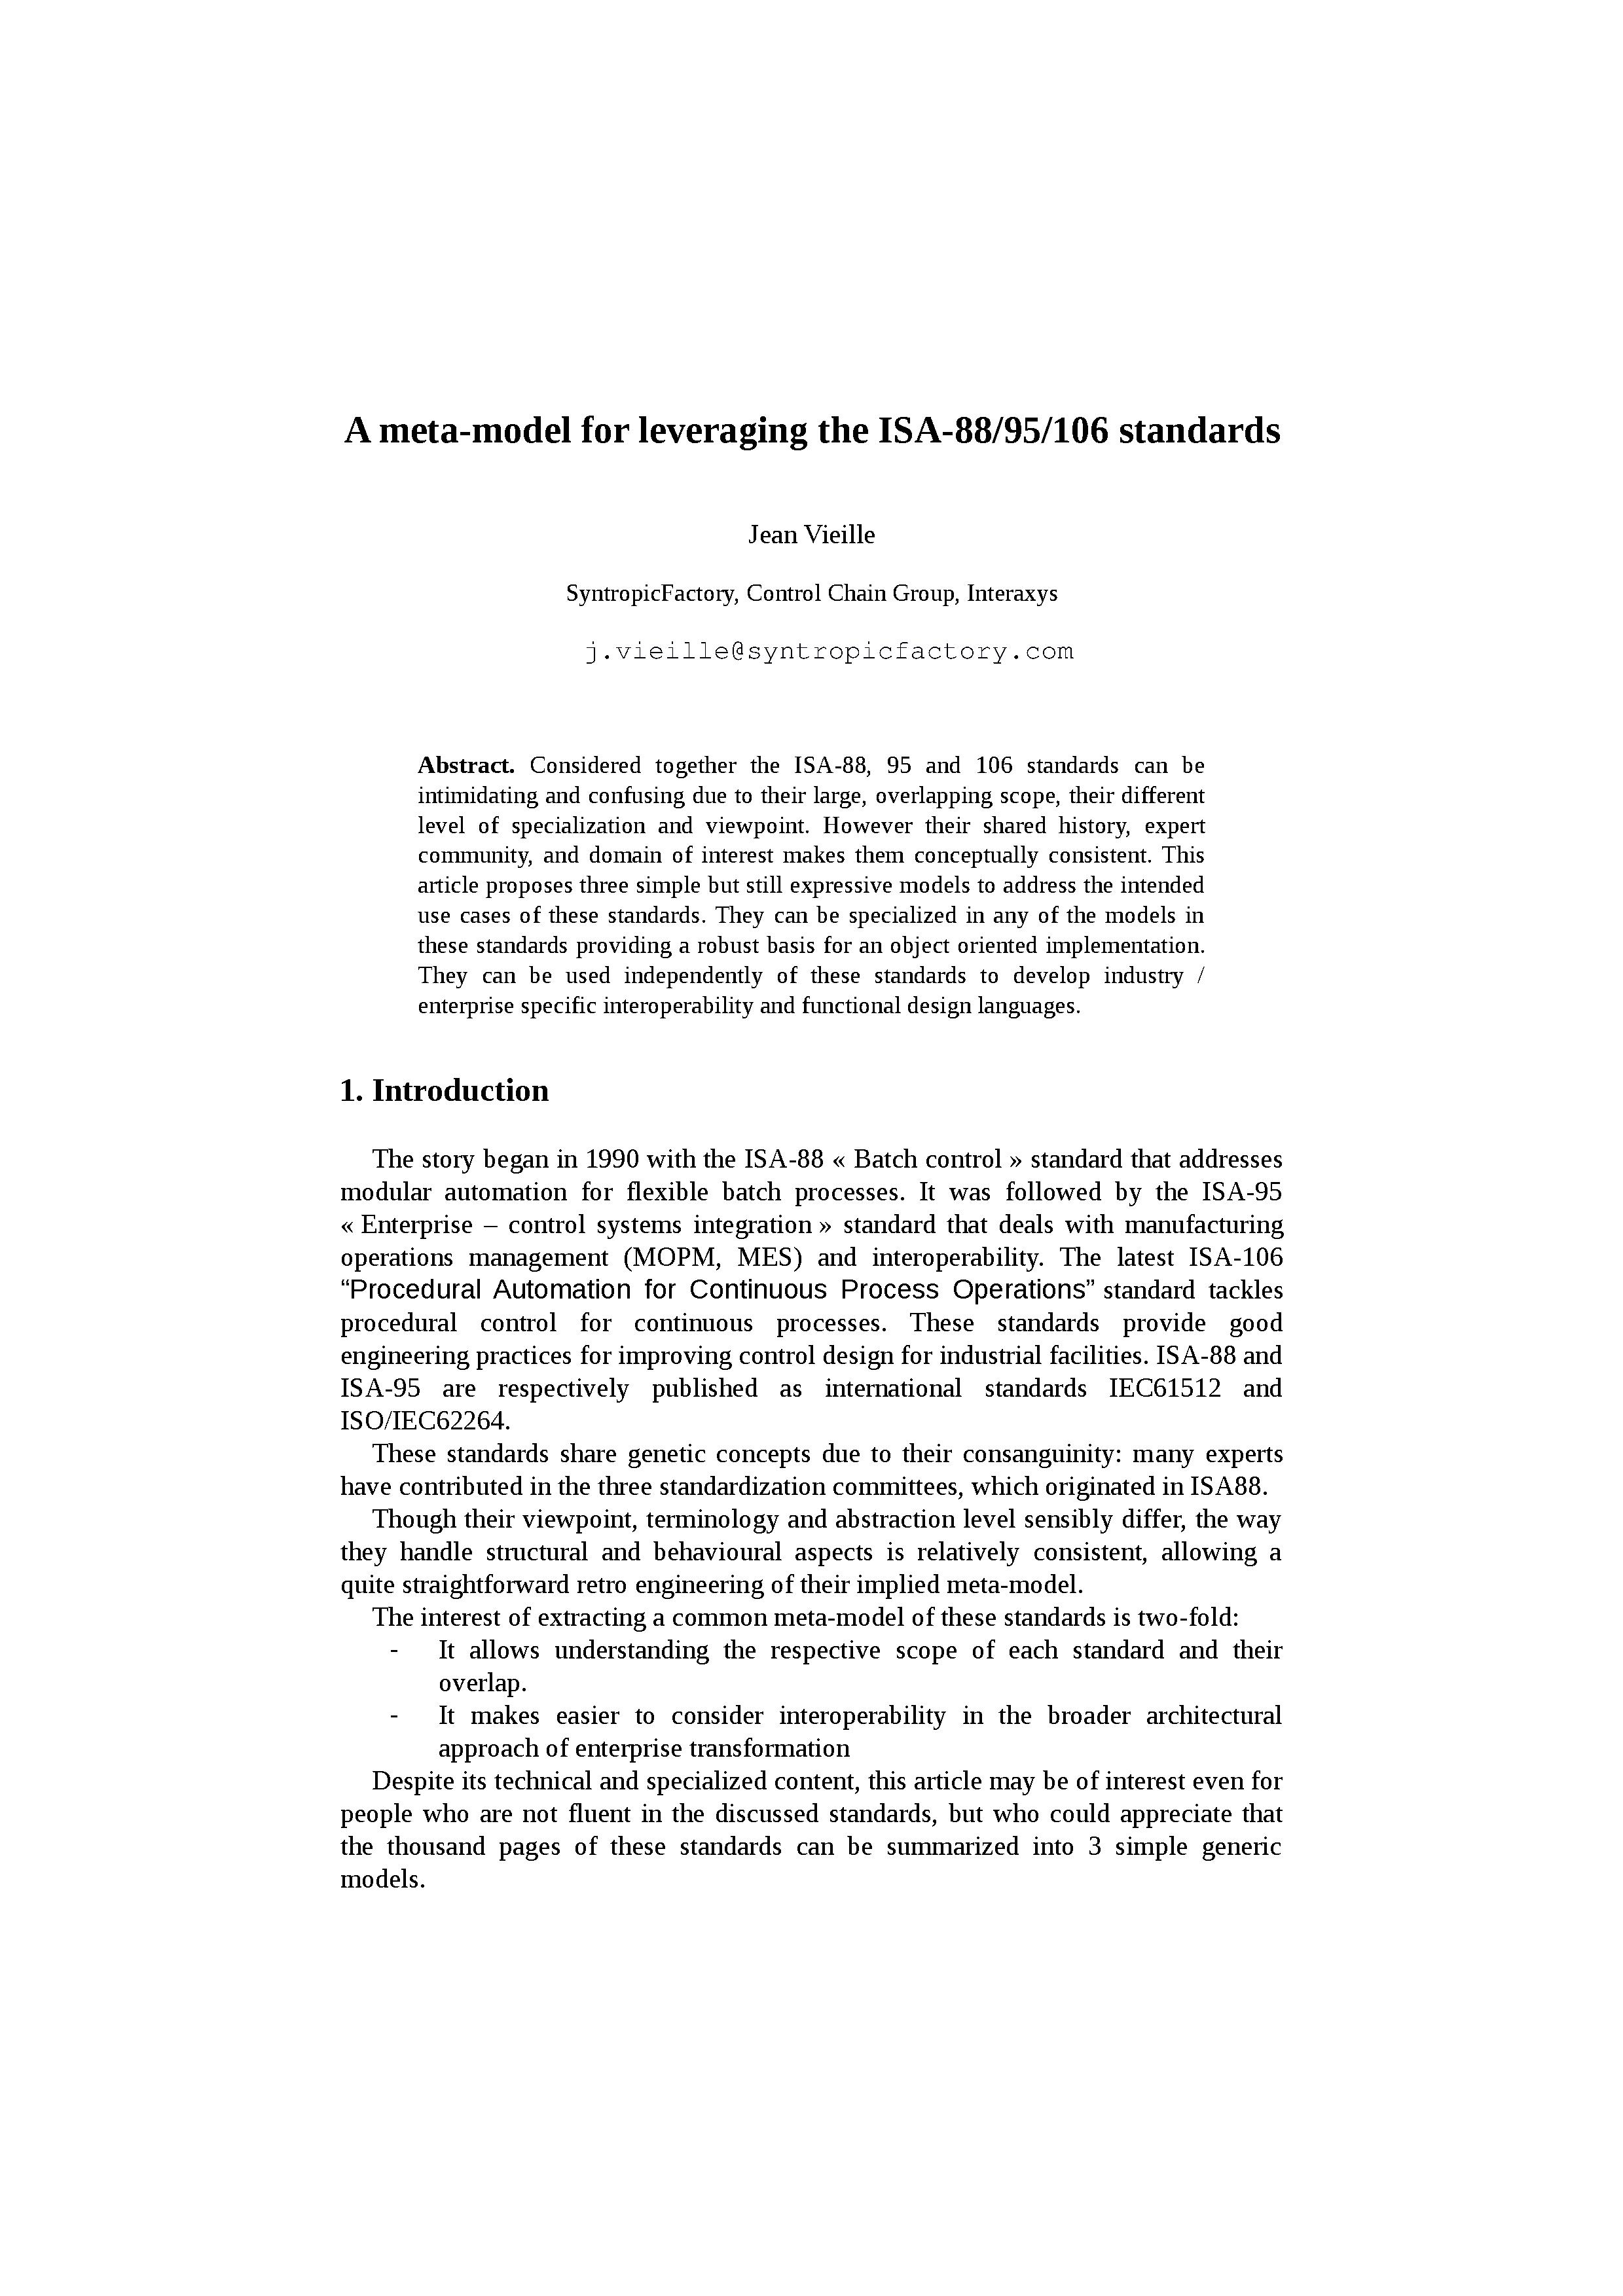 A meta-model for leveraging the ISA-88, ISA-95 and ISA-106 standards